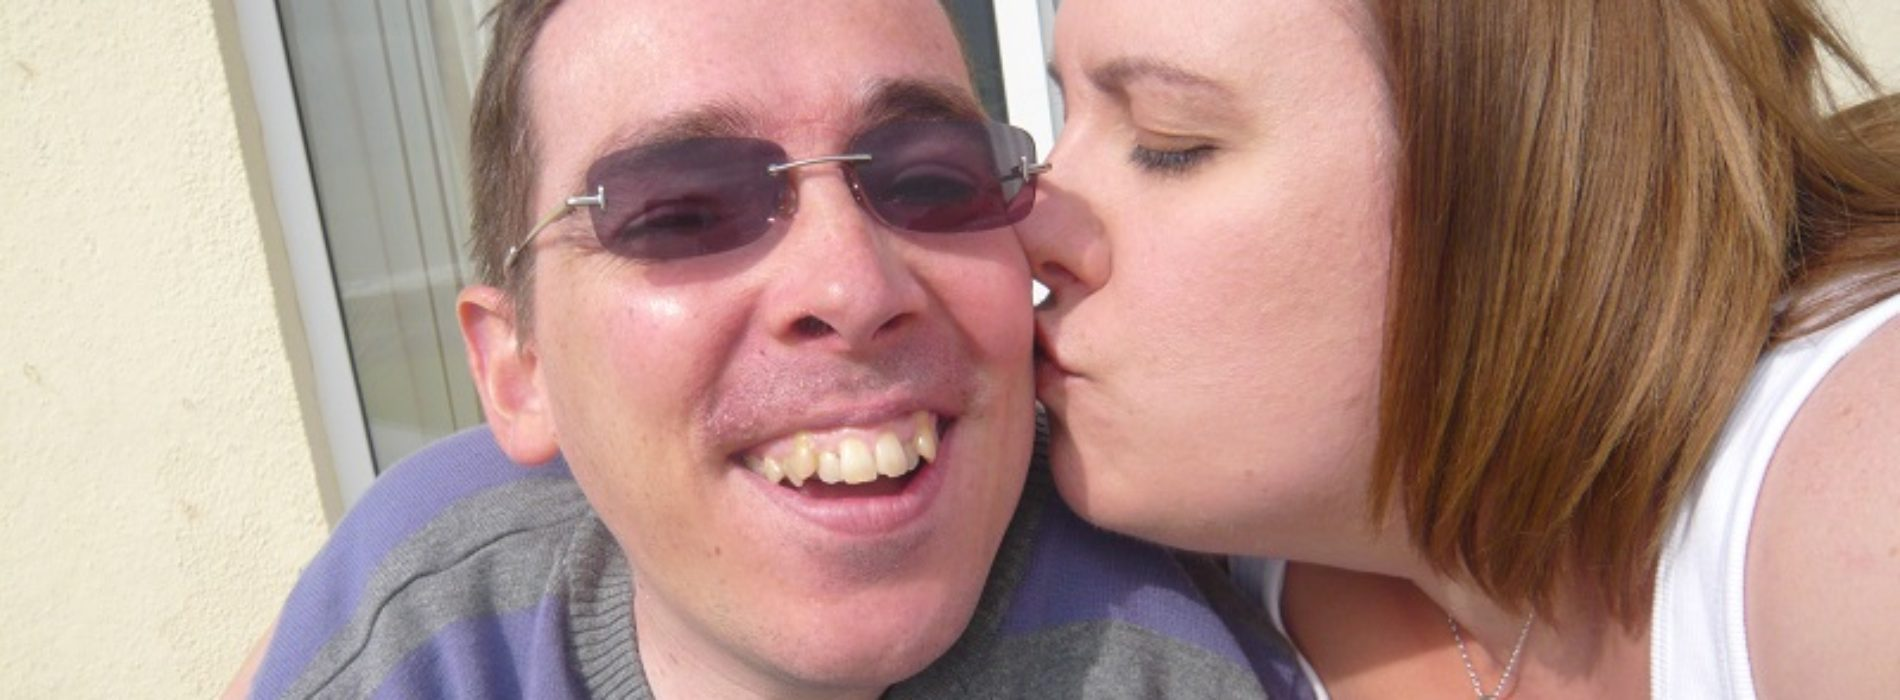 Proof that disability doesn't mean love isn't possible